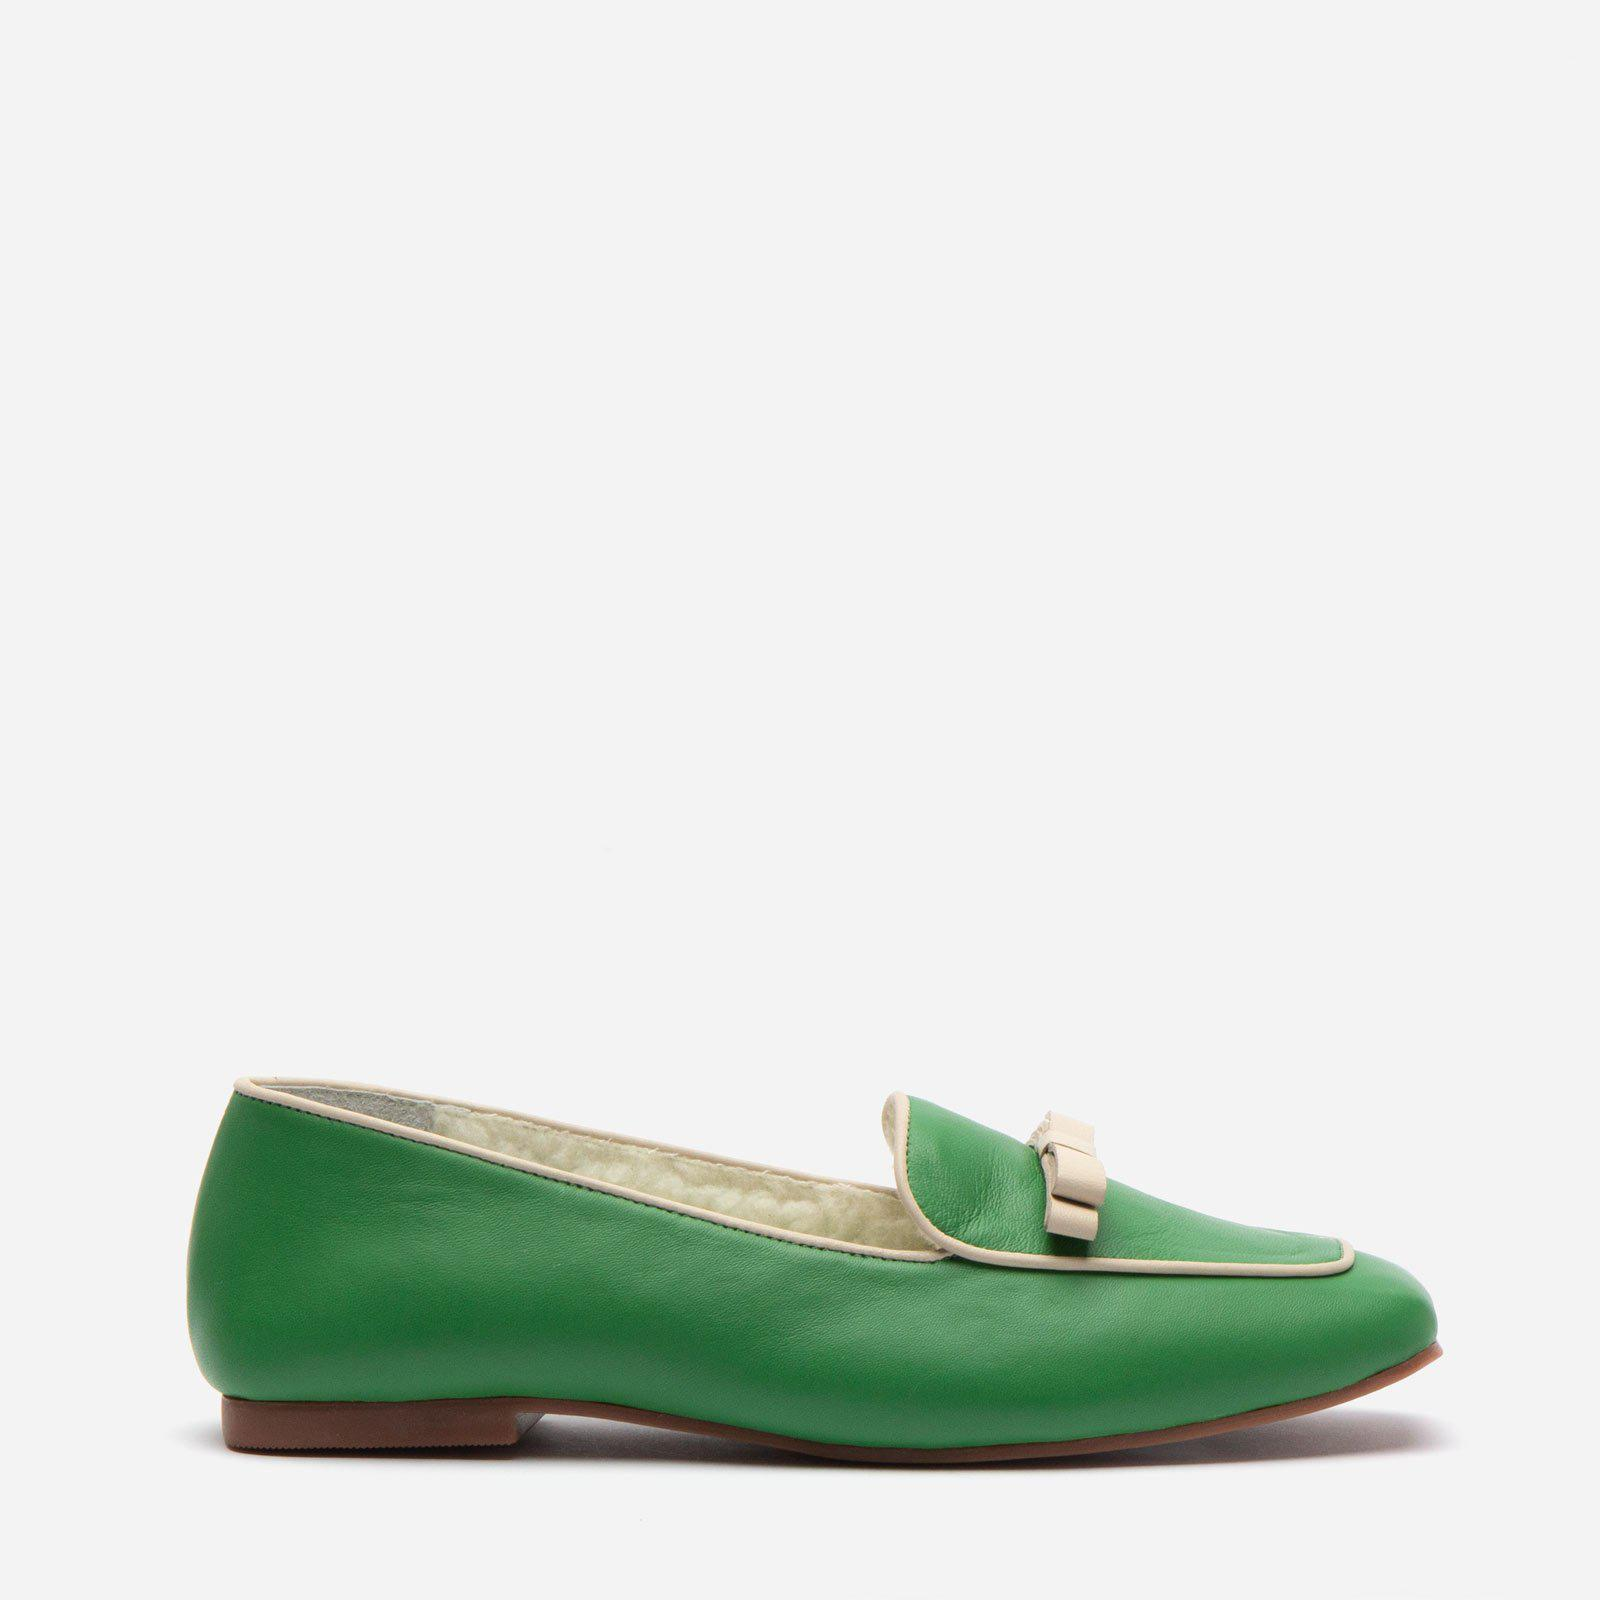 Suzanne Cozy Loafer Nappa Faux Shearling Green